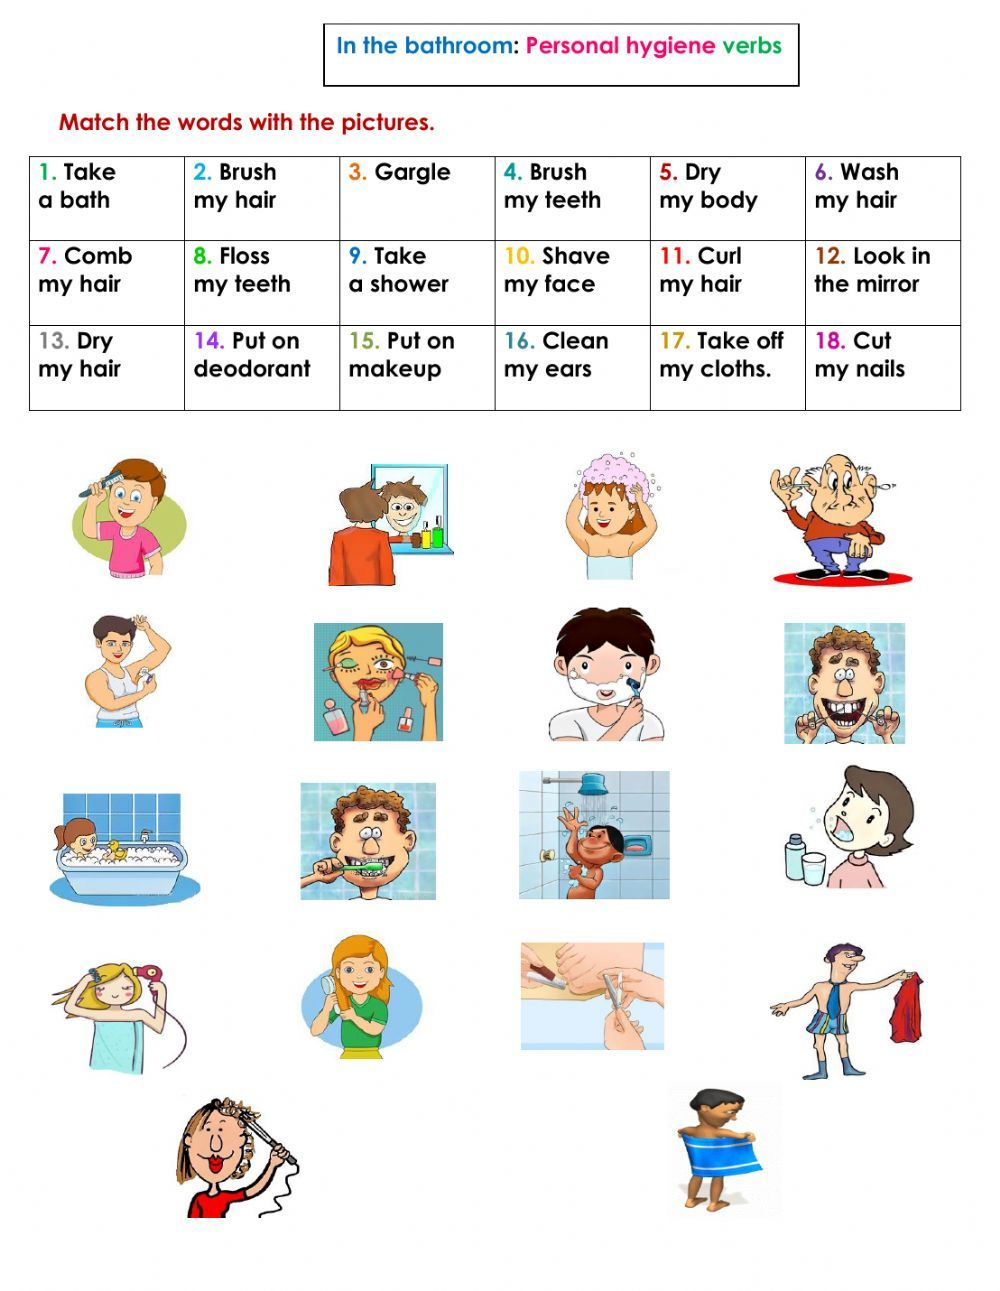 The Bathroom Personal Hygiene Verbs Interactive